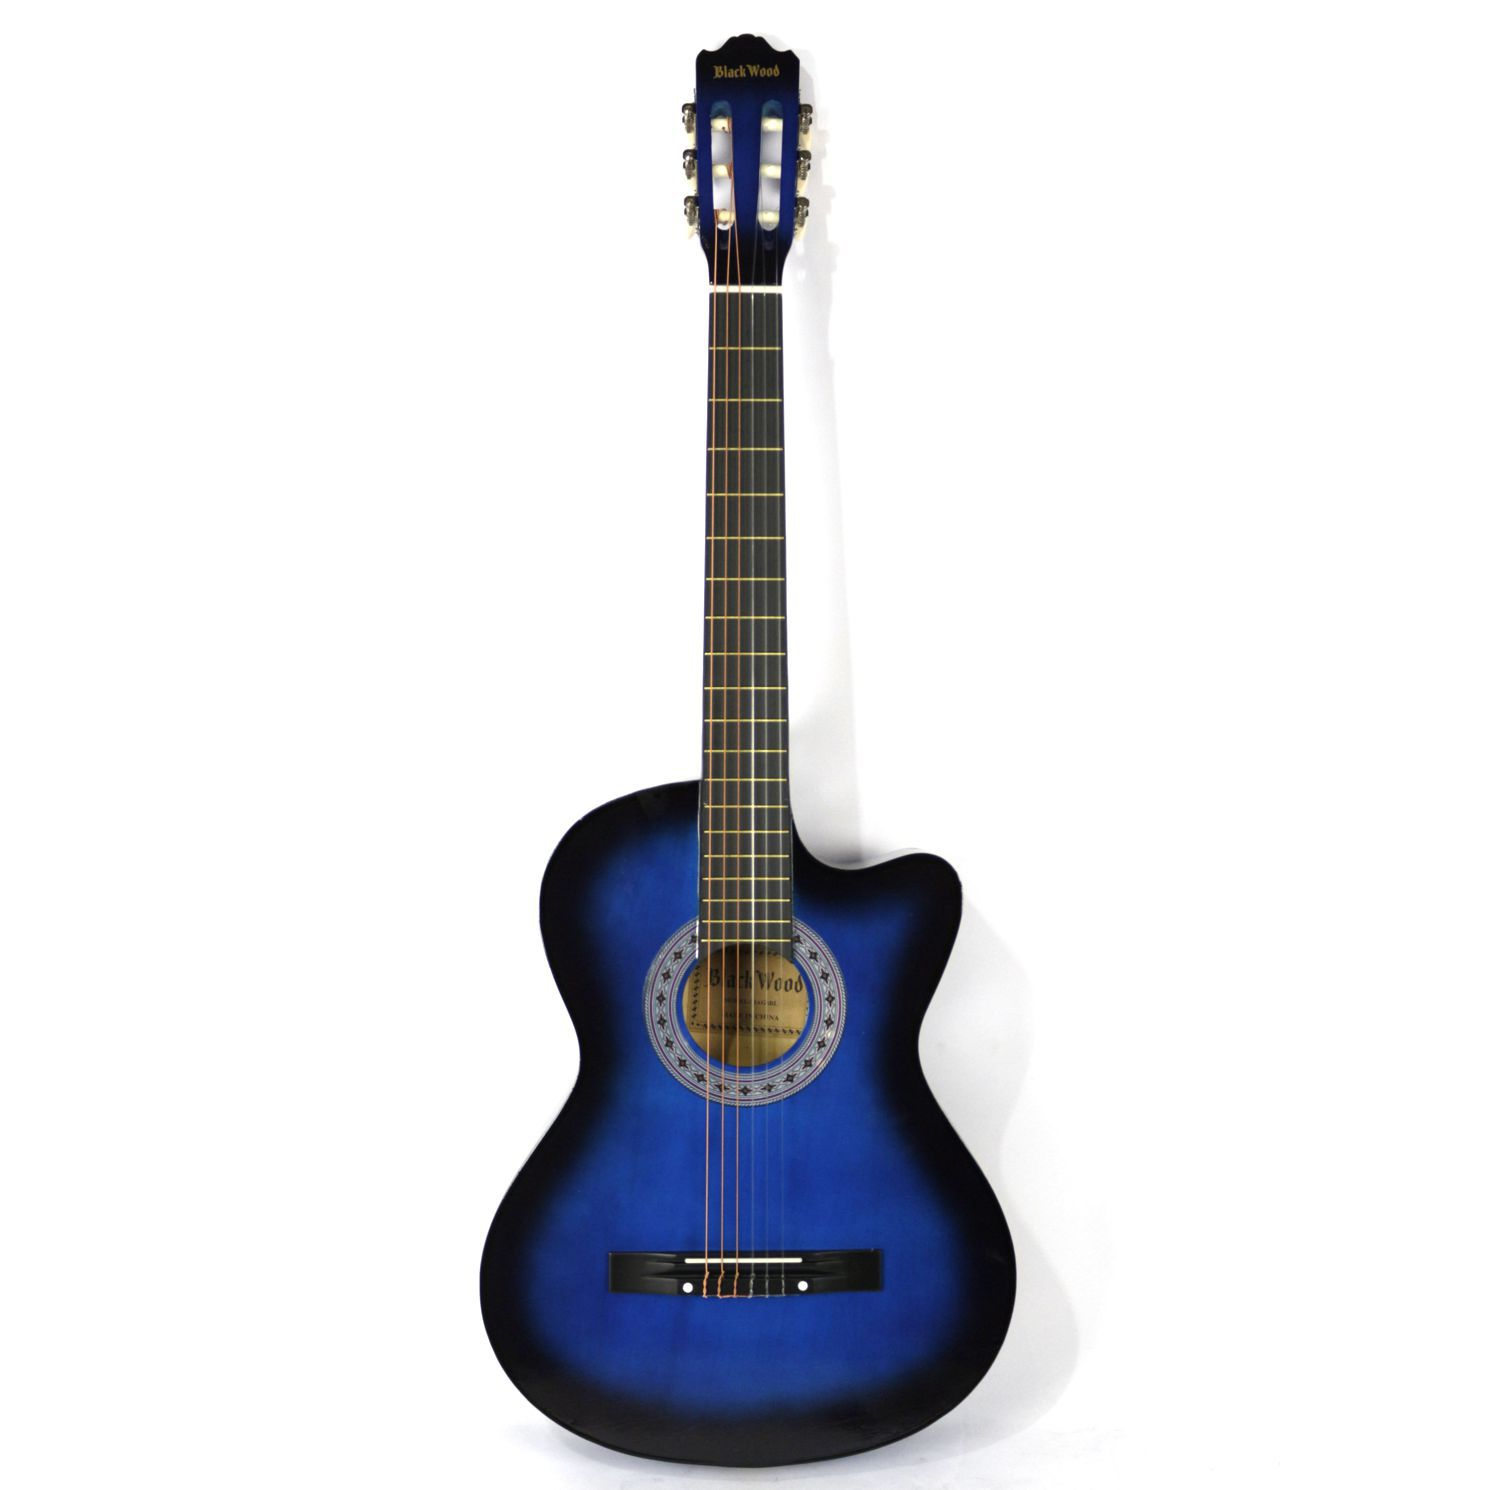 Violão Austin Clássico NYLON com CUT WAY MAG6BL AZUL - BLACK Wood